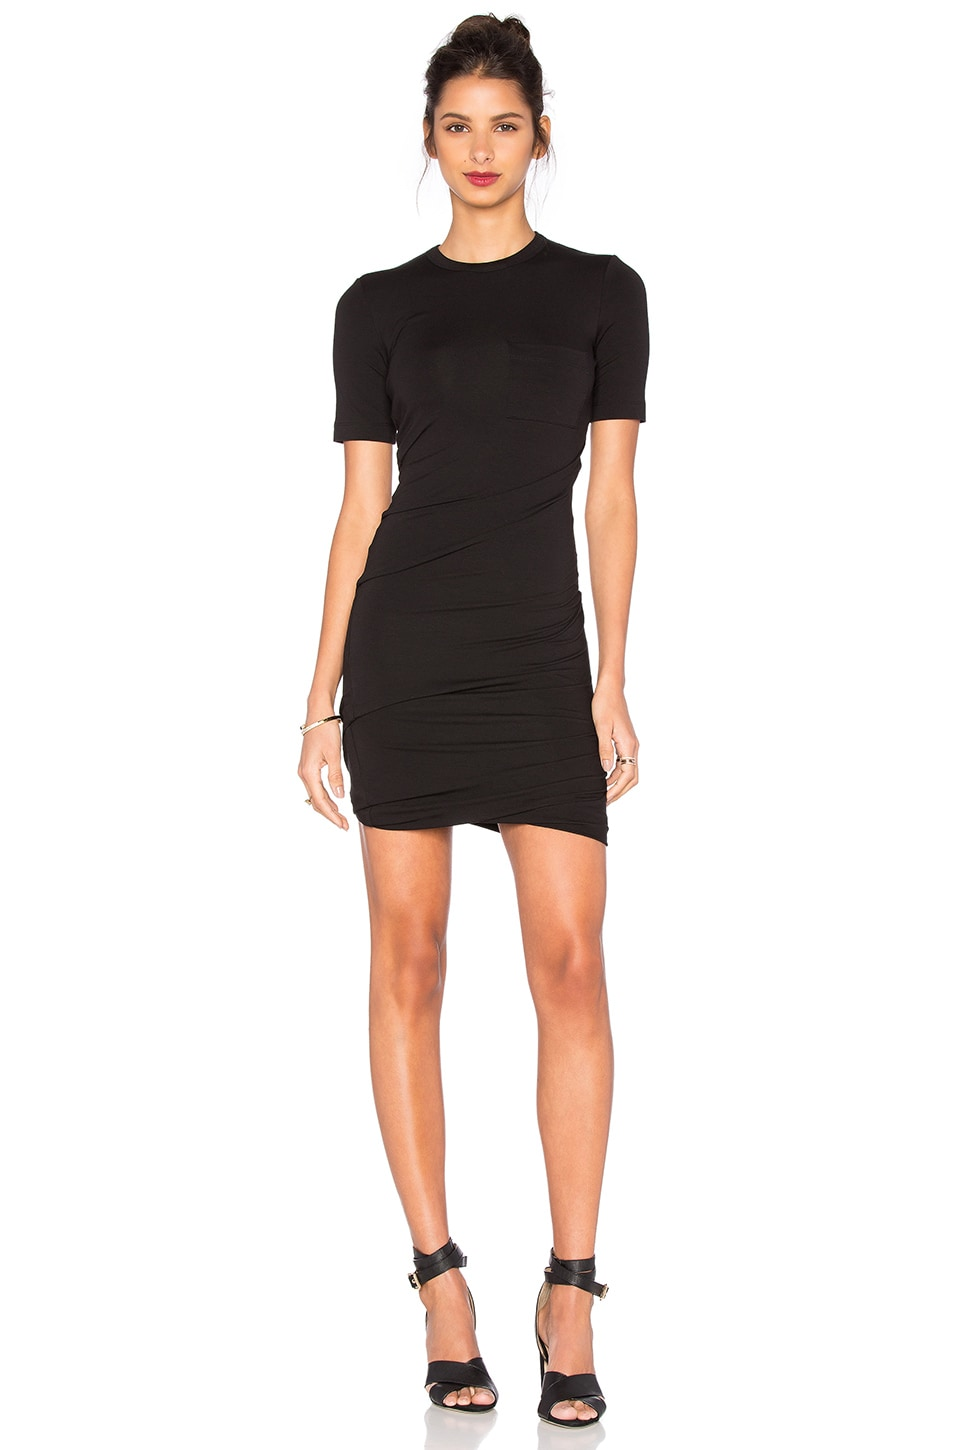 Crepe Jersey Dress by T by Alexander Wang